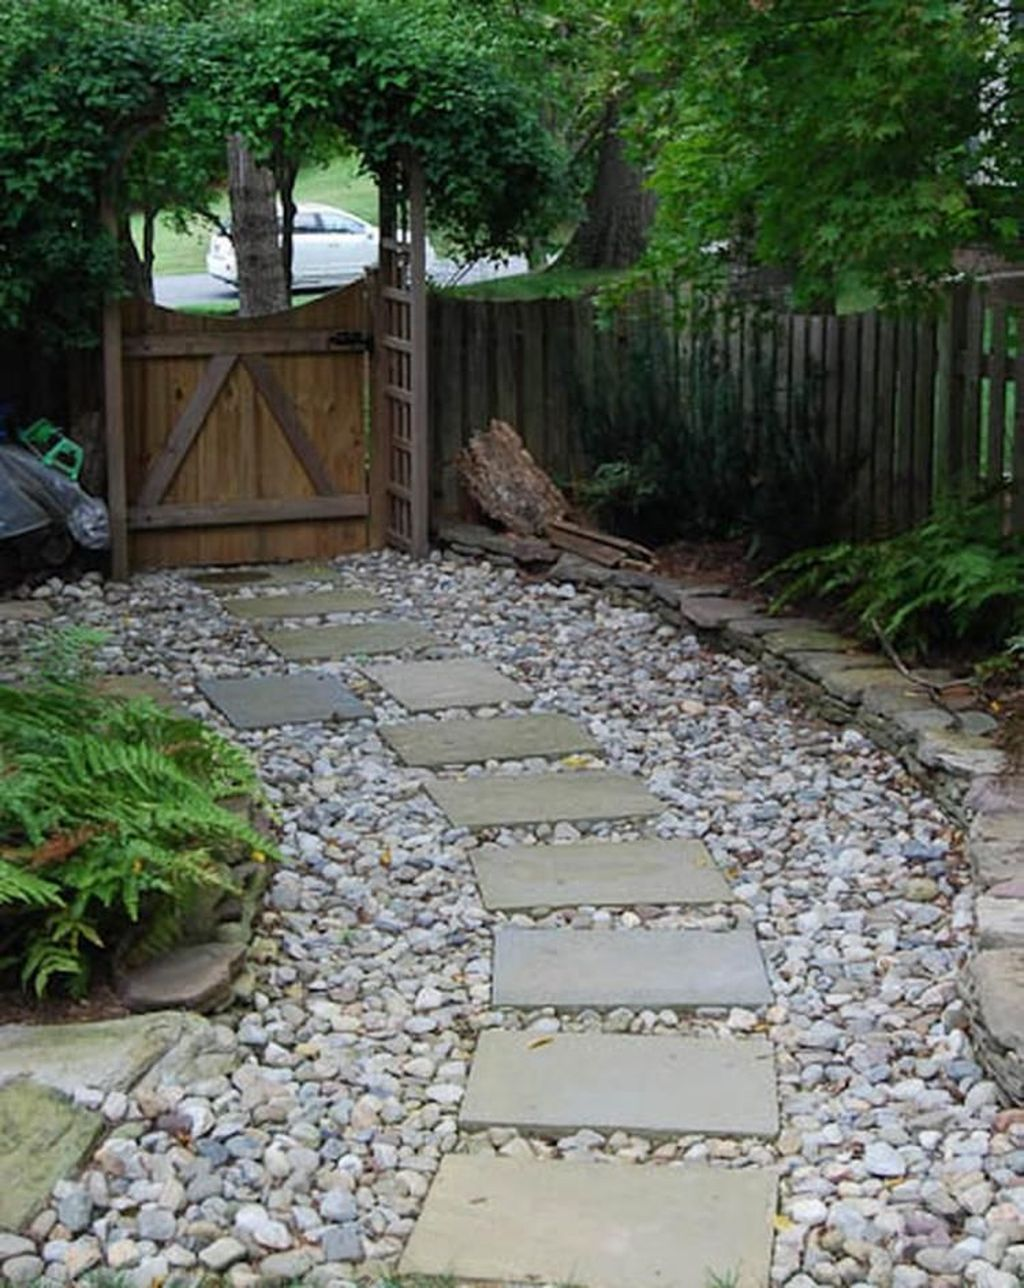 Stunning Stepping Stones Pathway Design Ideas 32